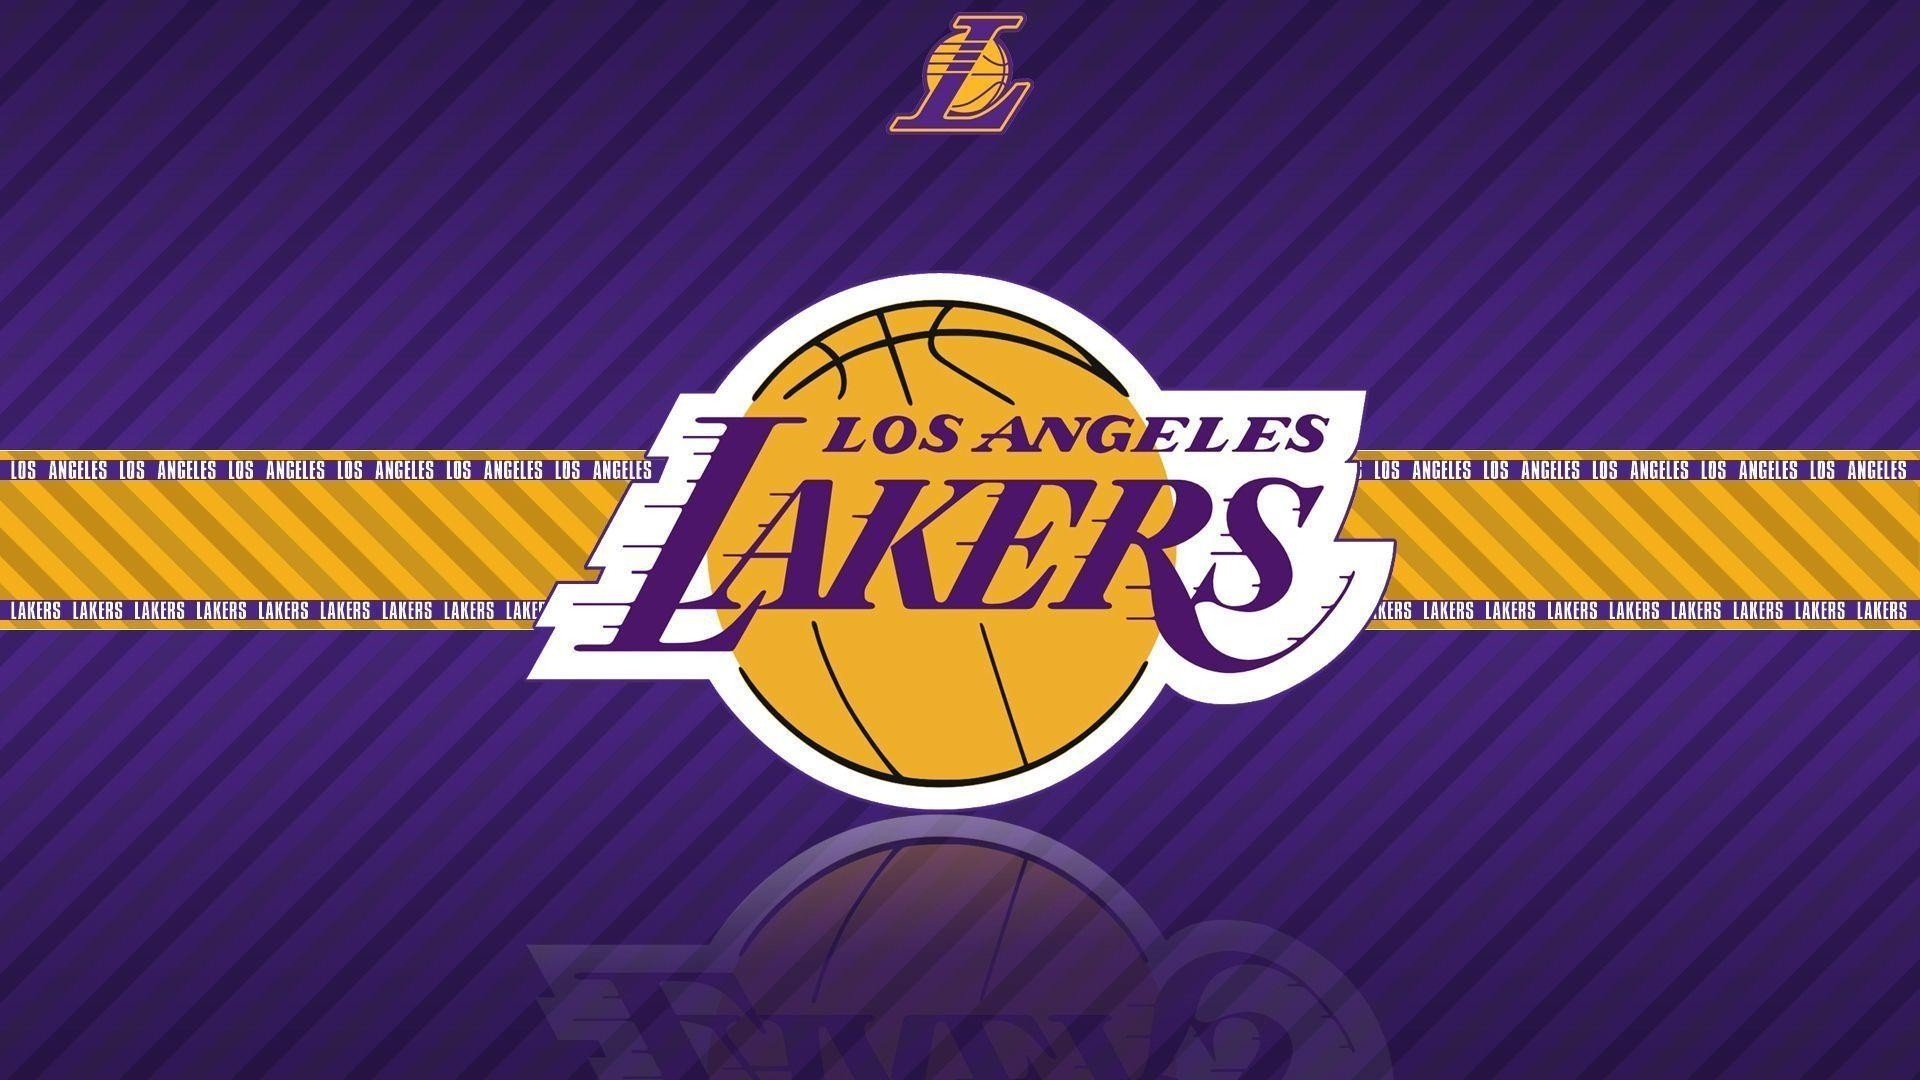 10 Top Nba Teams Logos Wallpapers FULL HD 1920×1080 For PC Background